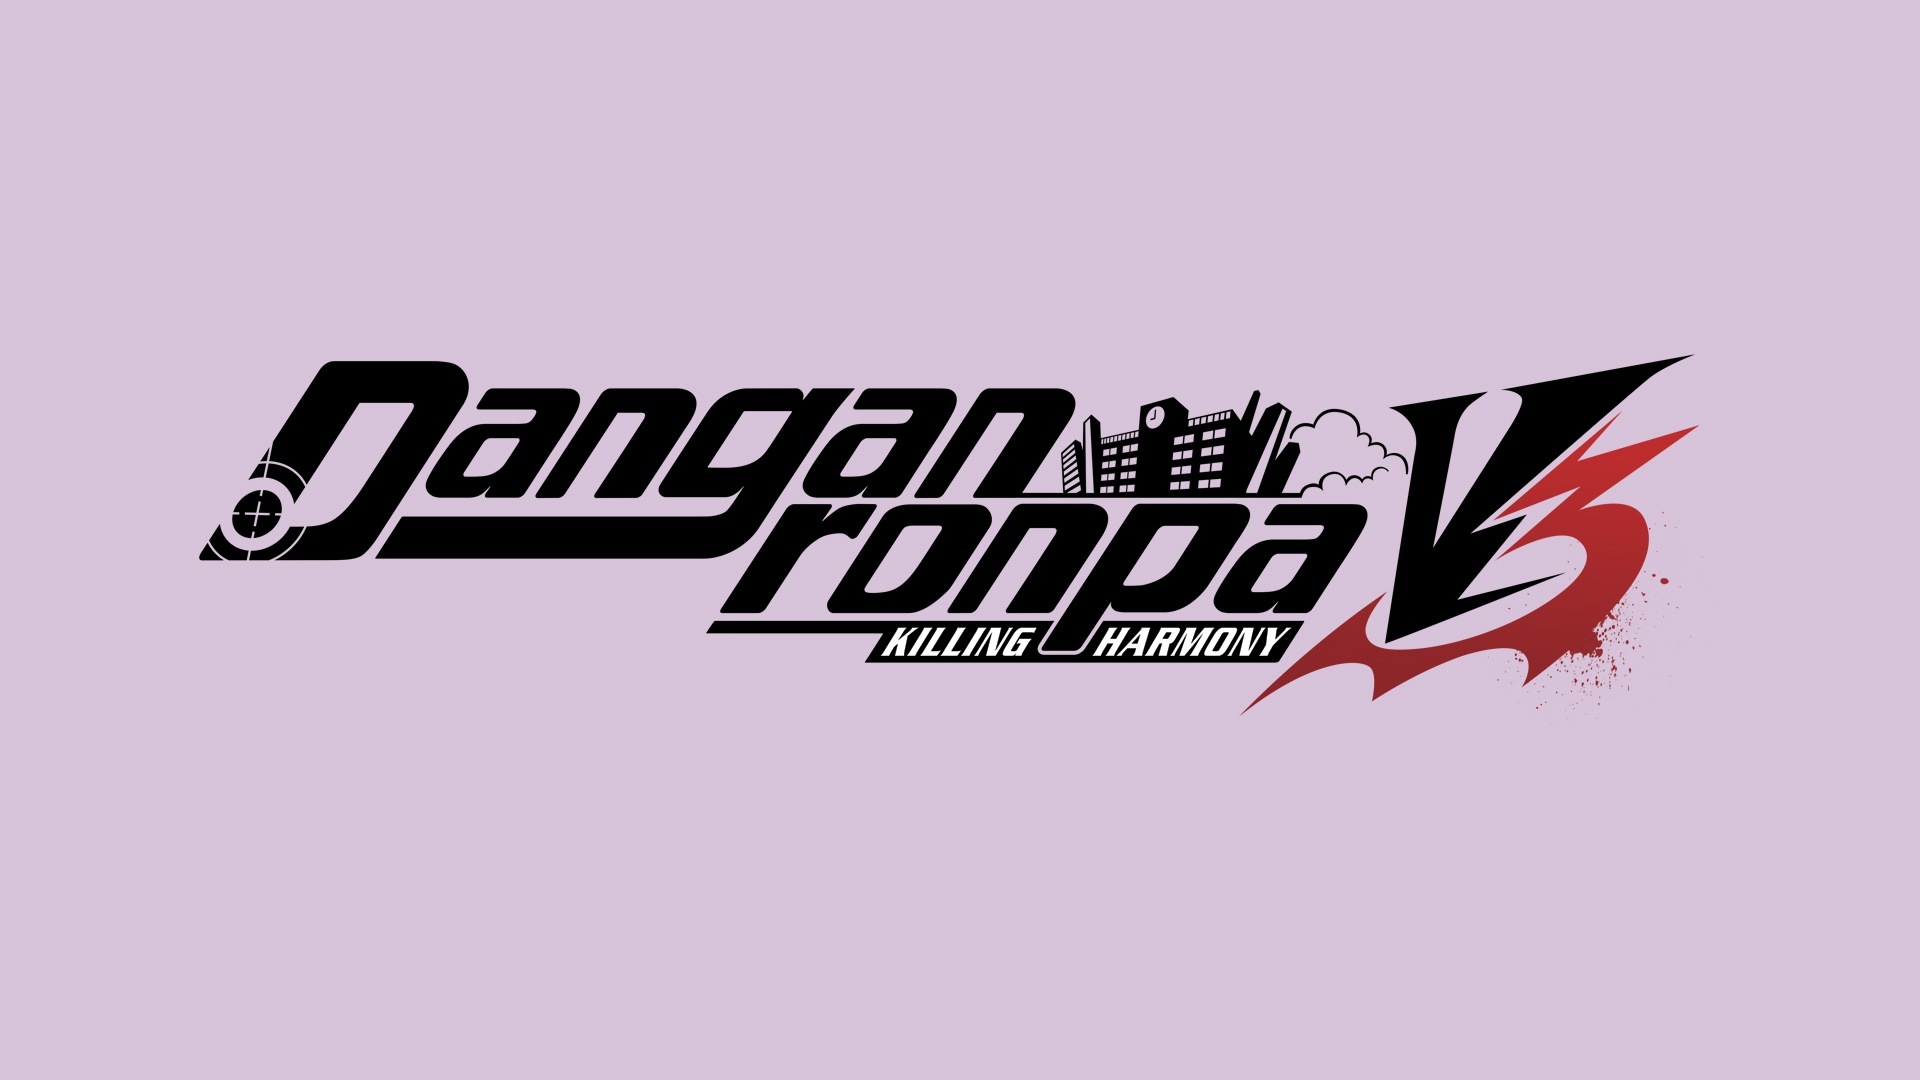 danganronpa v3 logo wallpaper 67399